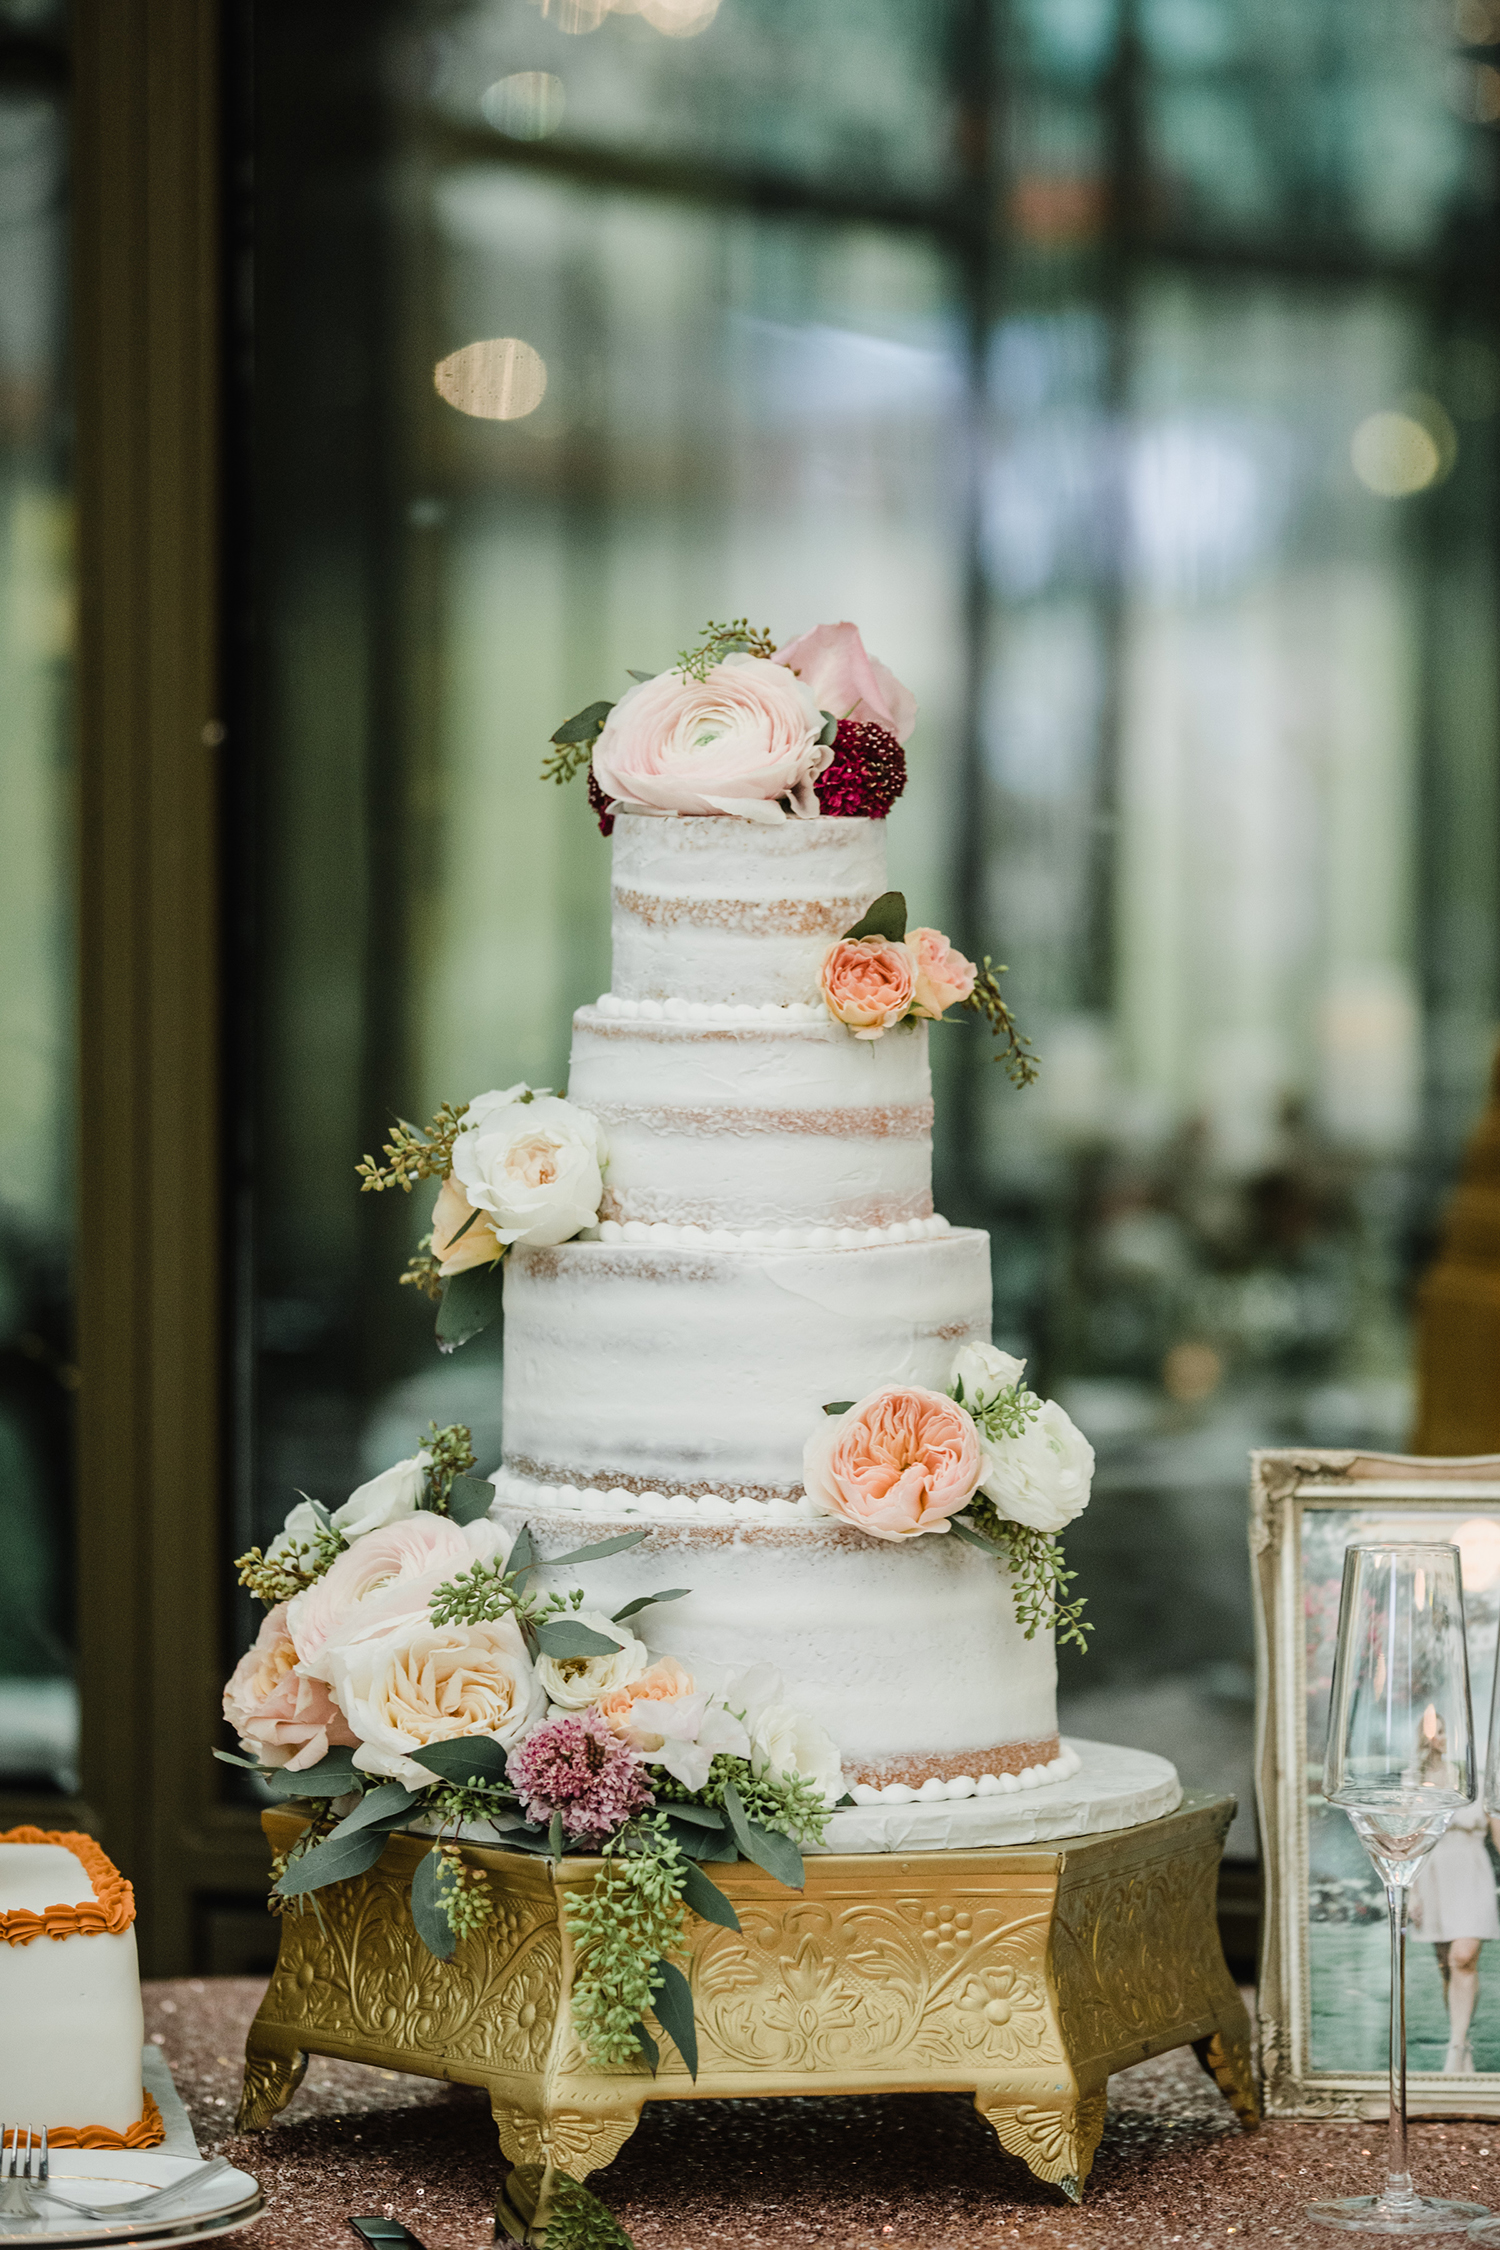 naked cake - custom wedding cakes in houston